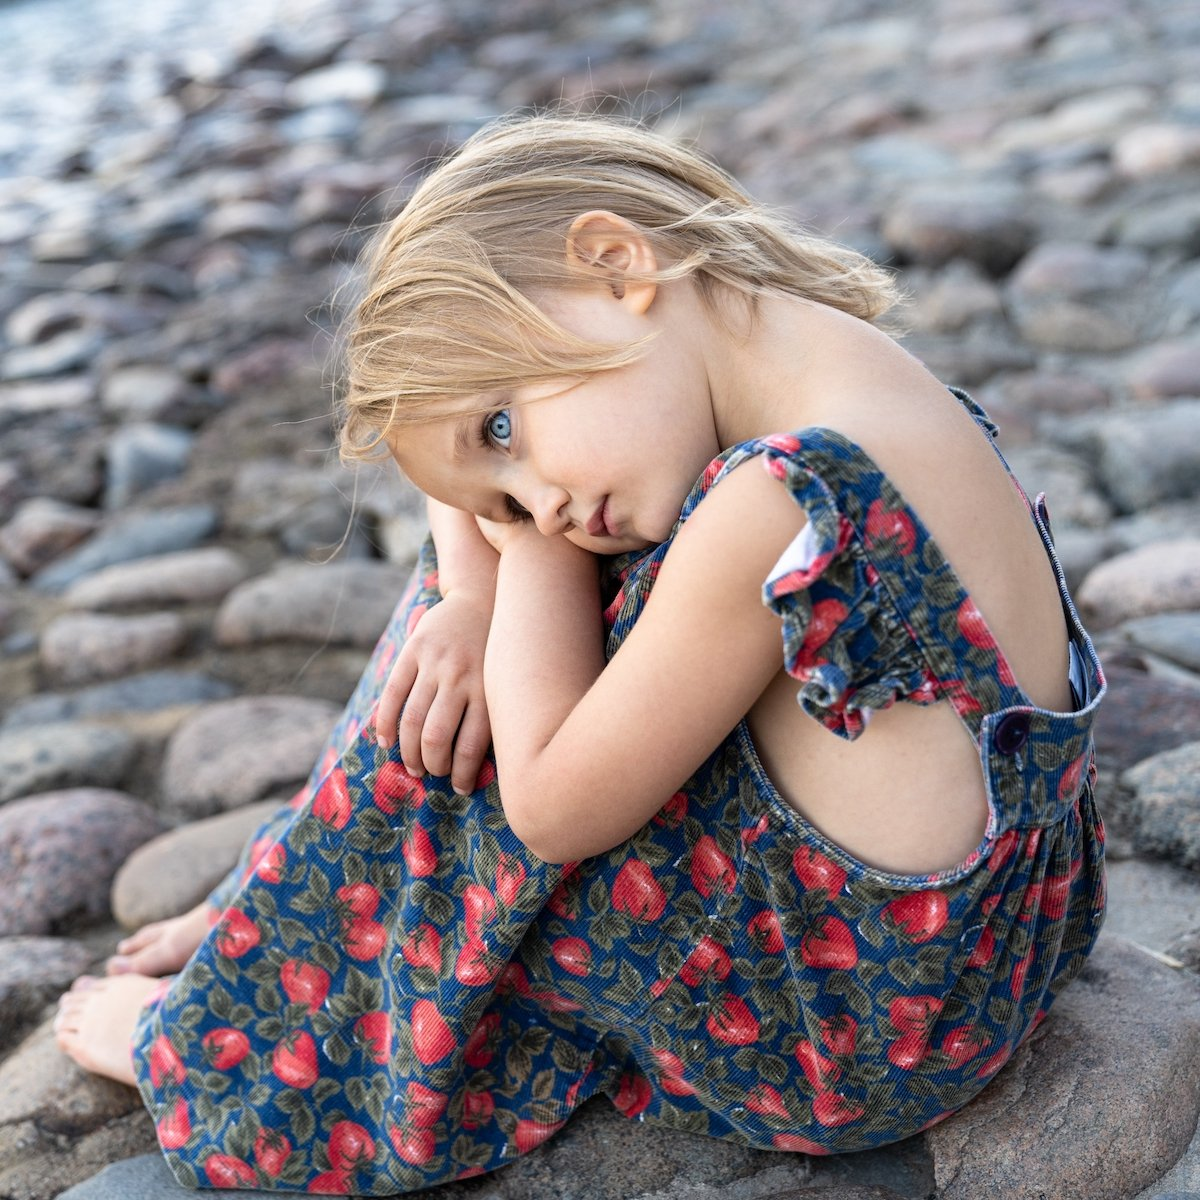 Anxious young girl in anxiety therapy.